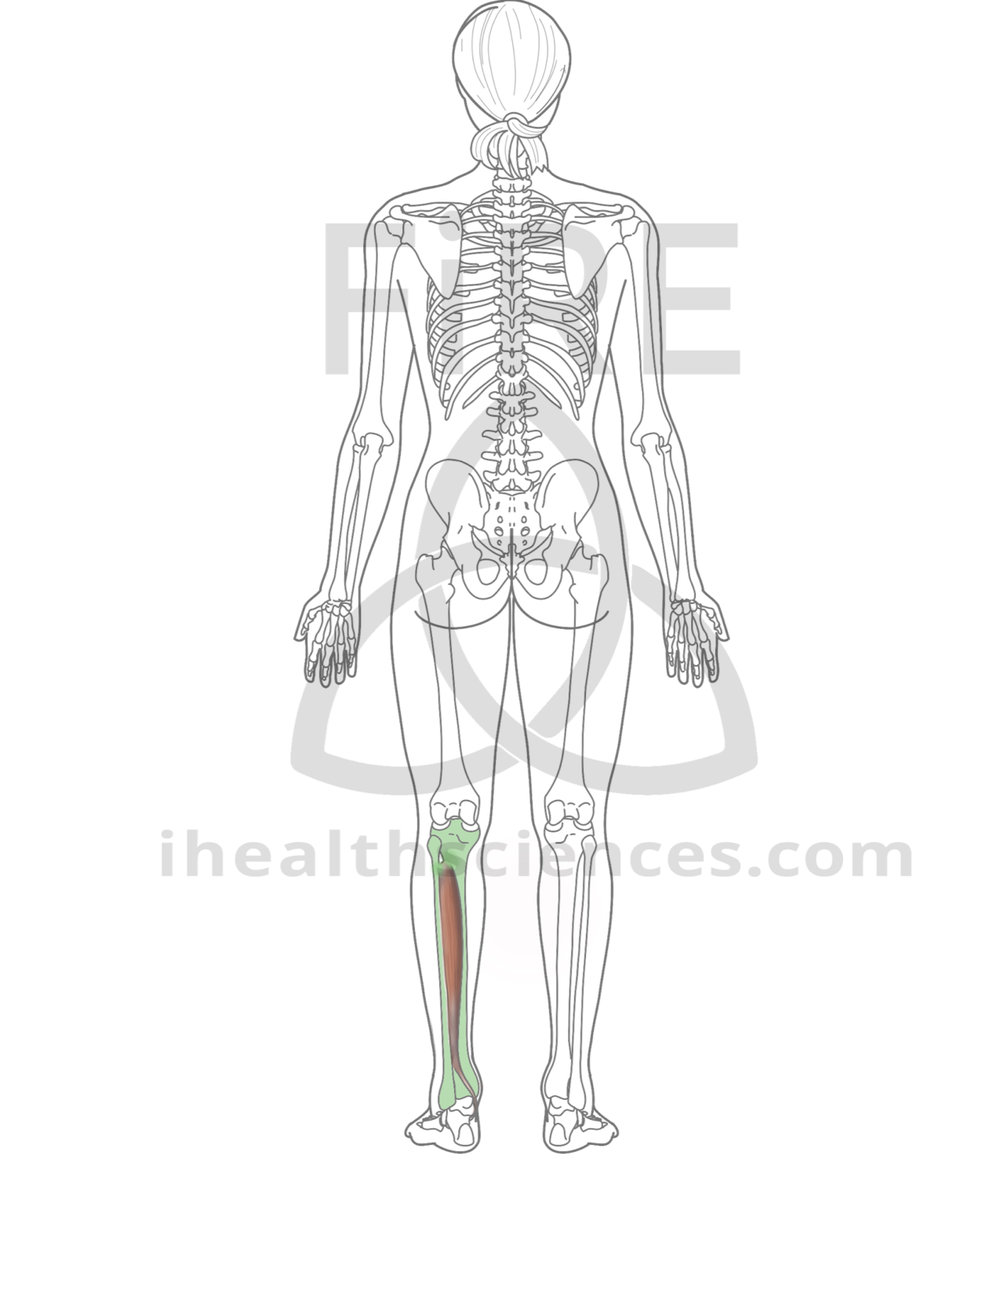 posterior tibialis (insertion unable to be shown).jpg